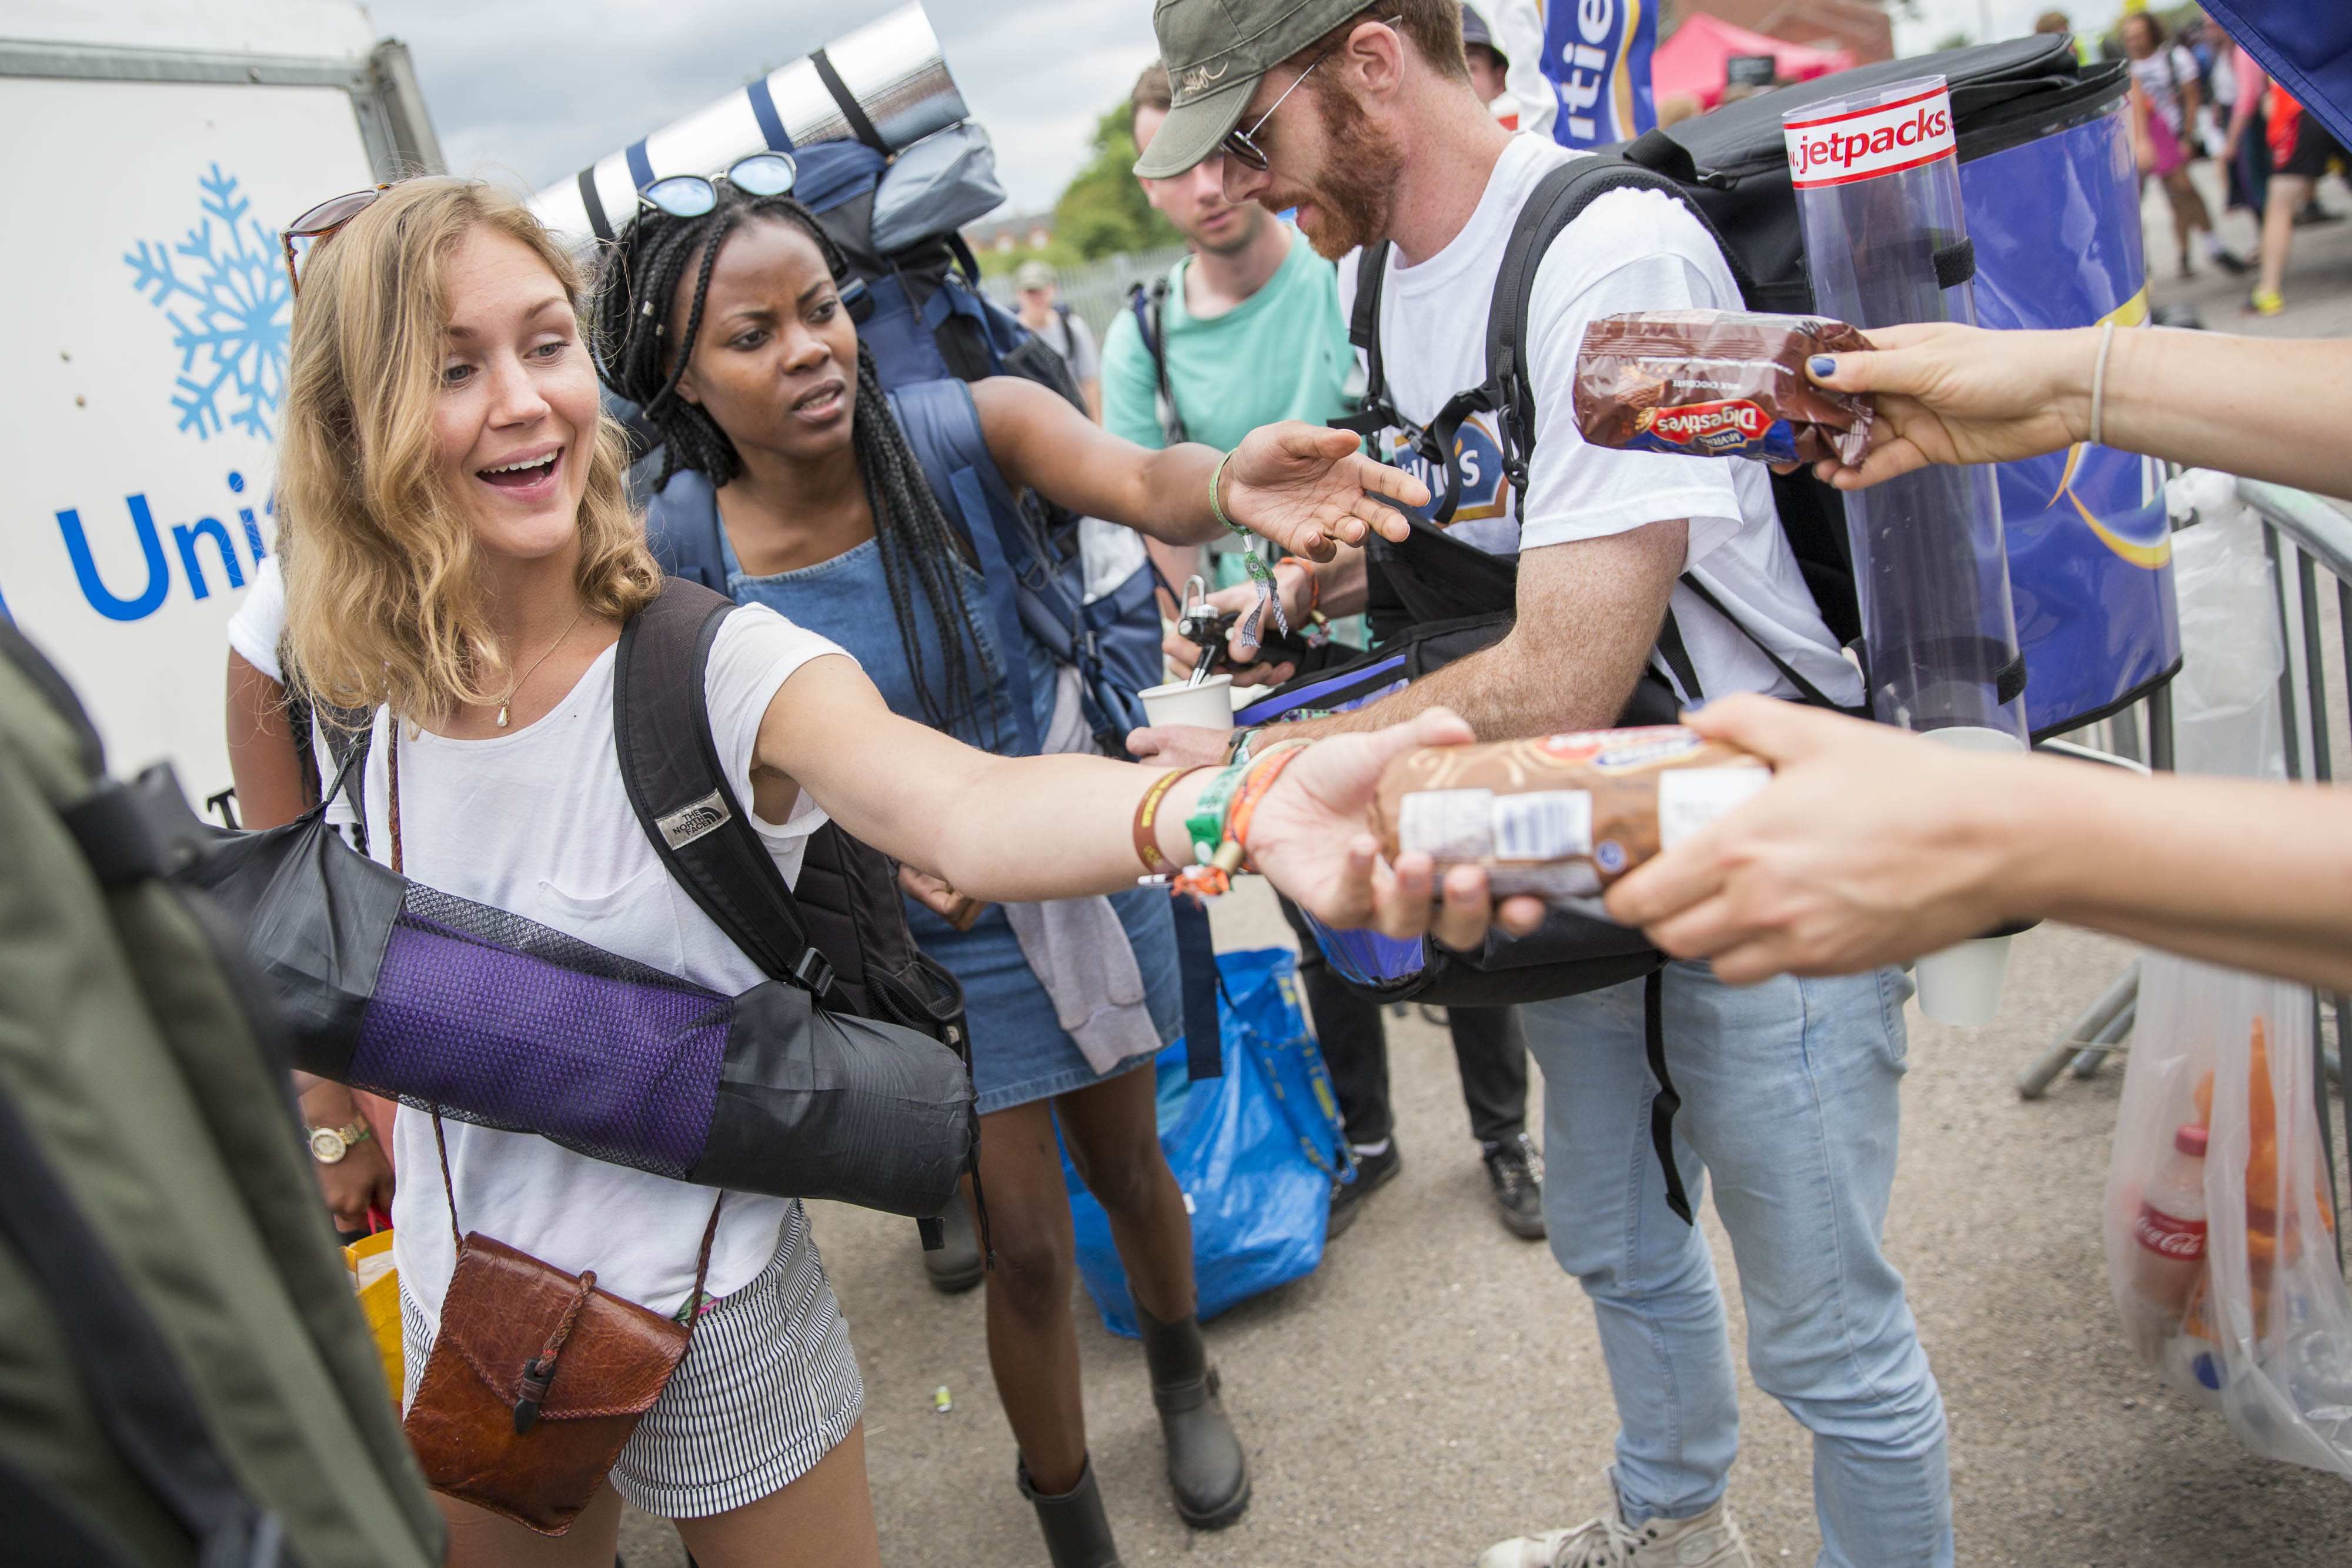 A queue of festival goers leaving Glastonbury excited as they are handed packets of McVities biscuits and cups of tea.